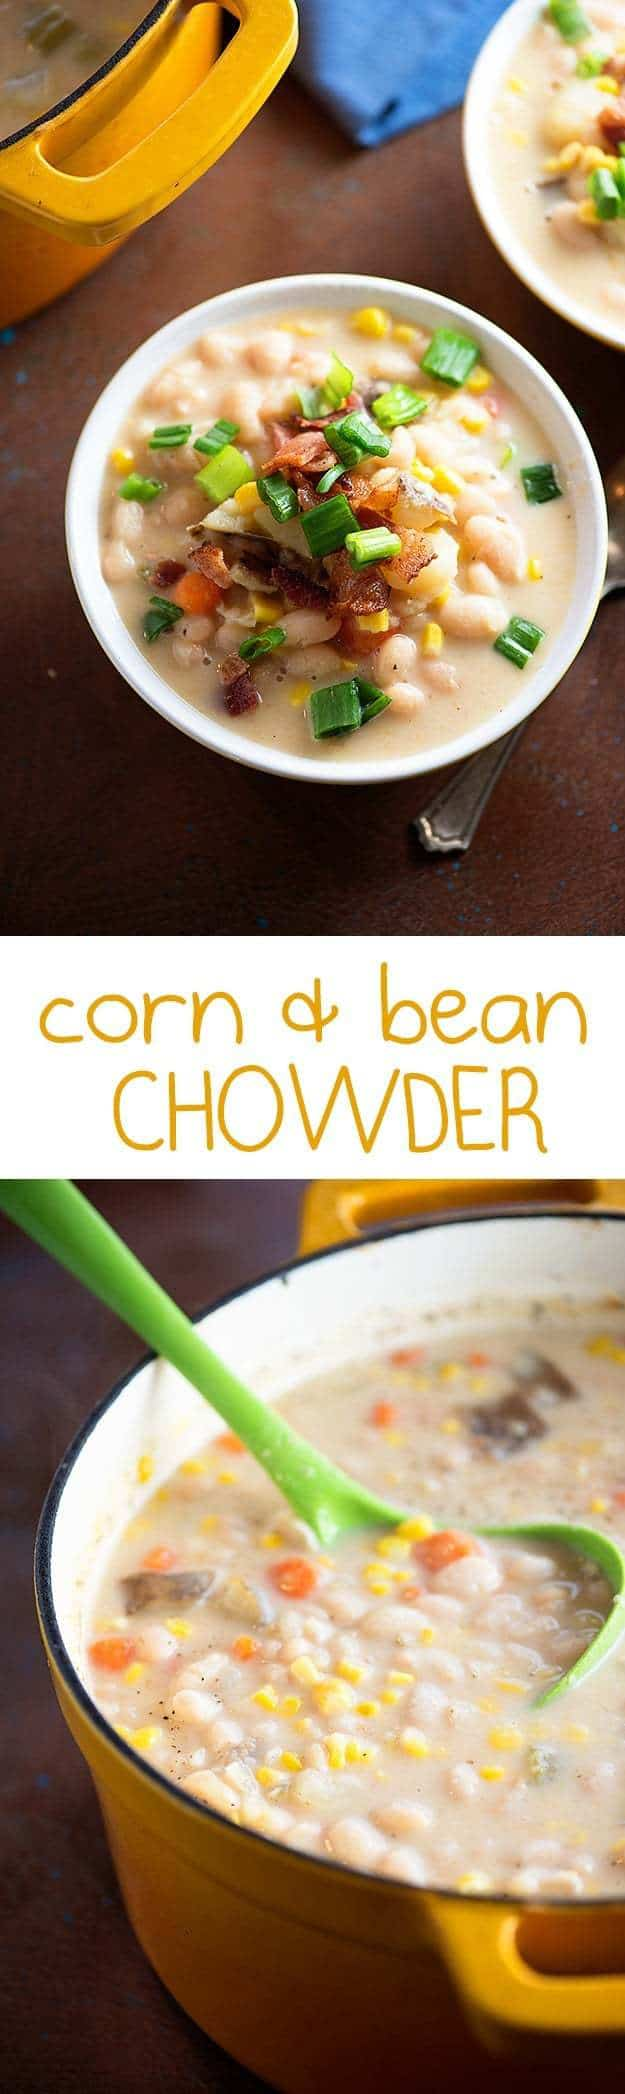 This sweet corn and bean chowder is loaded with fresh veggies and beans! We love this chowder recipe!